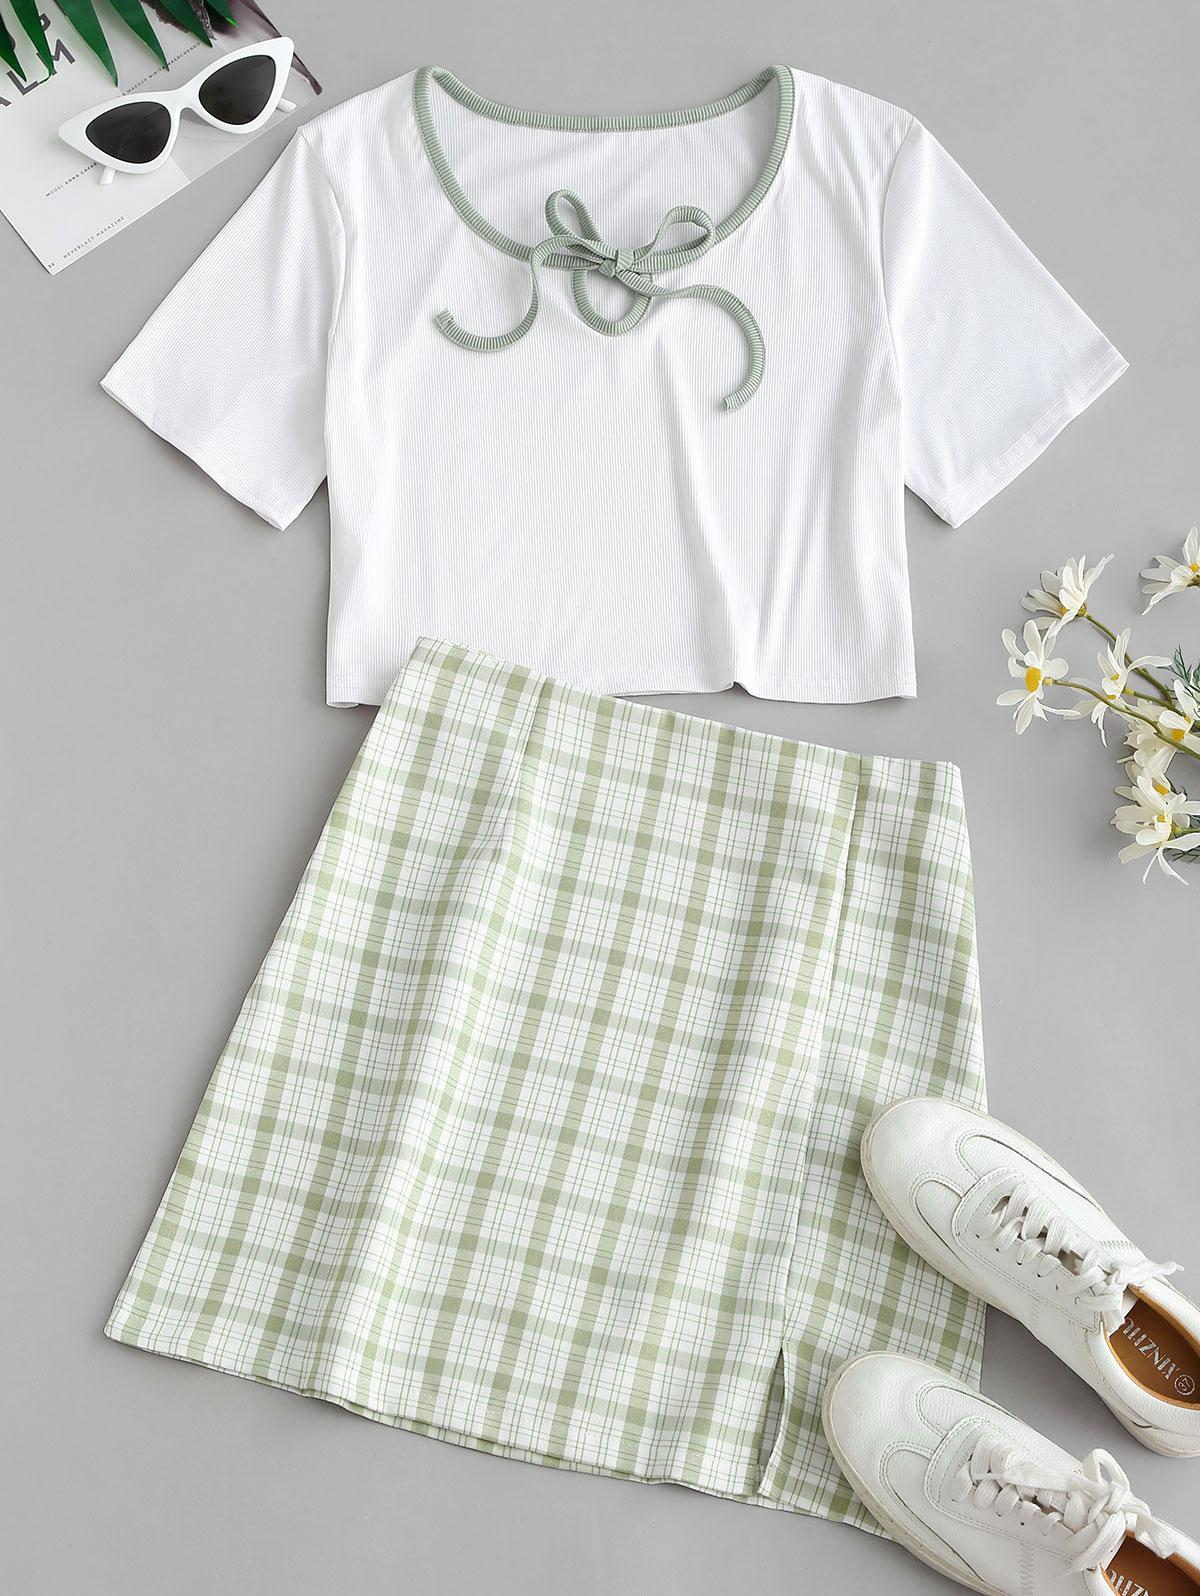 Ribbed Binding Tie Plaid Two Piece Skirt Set